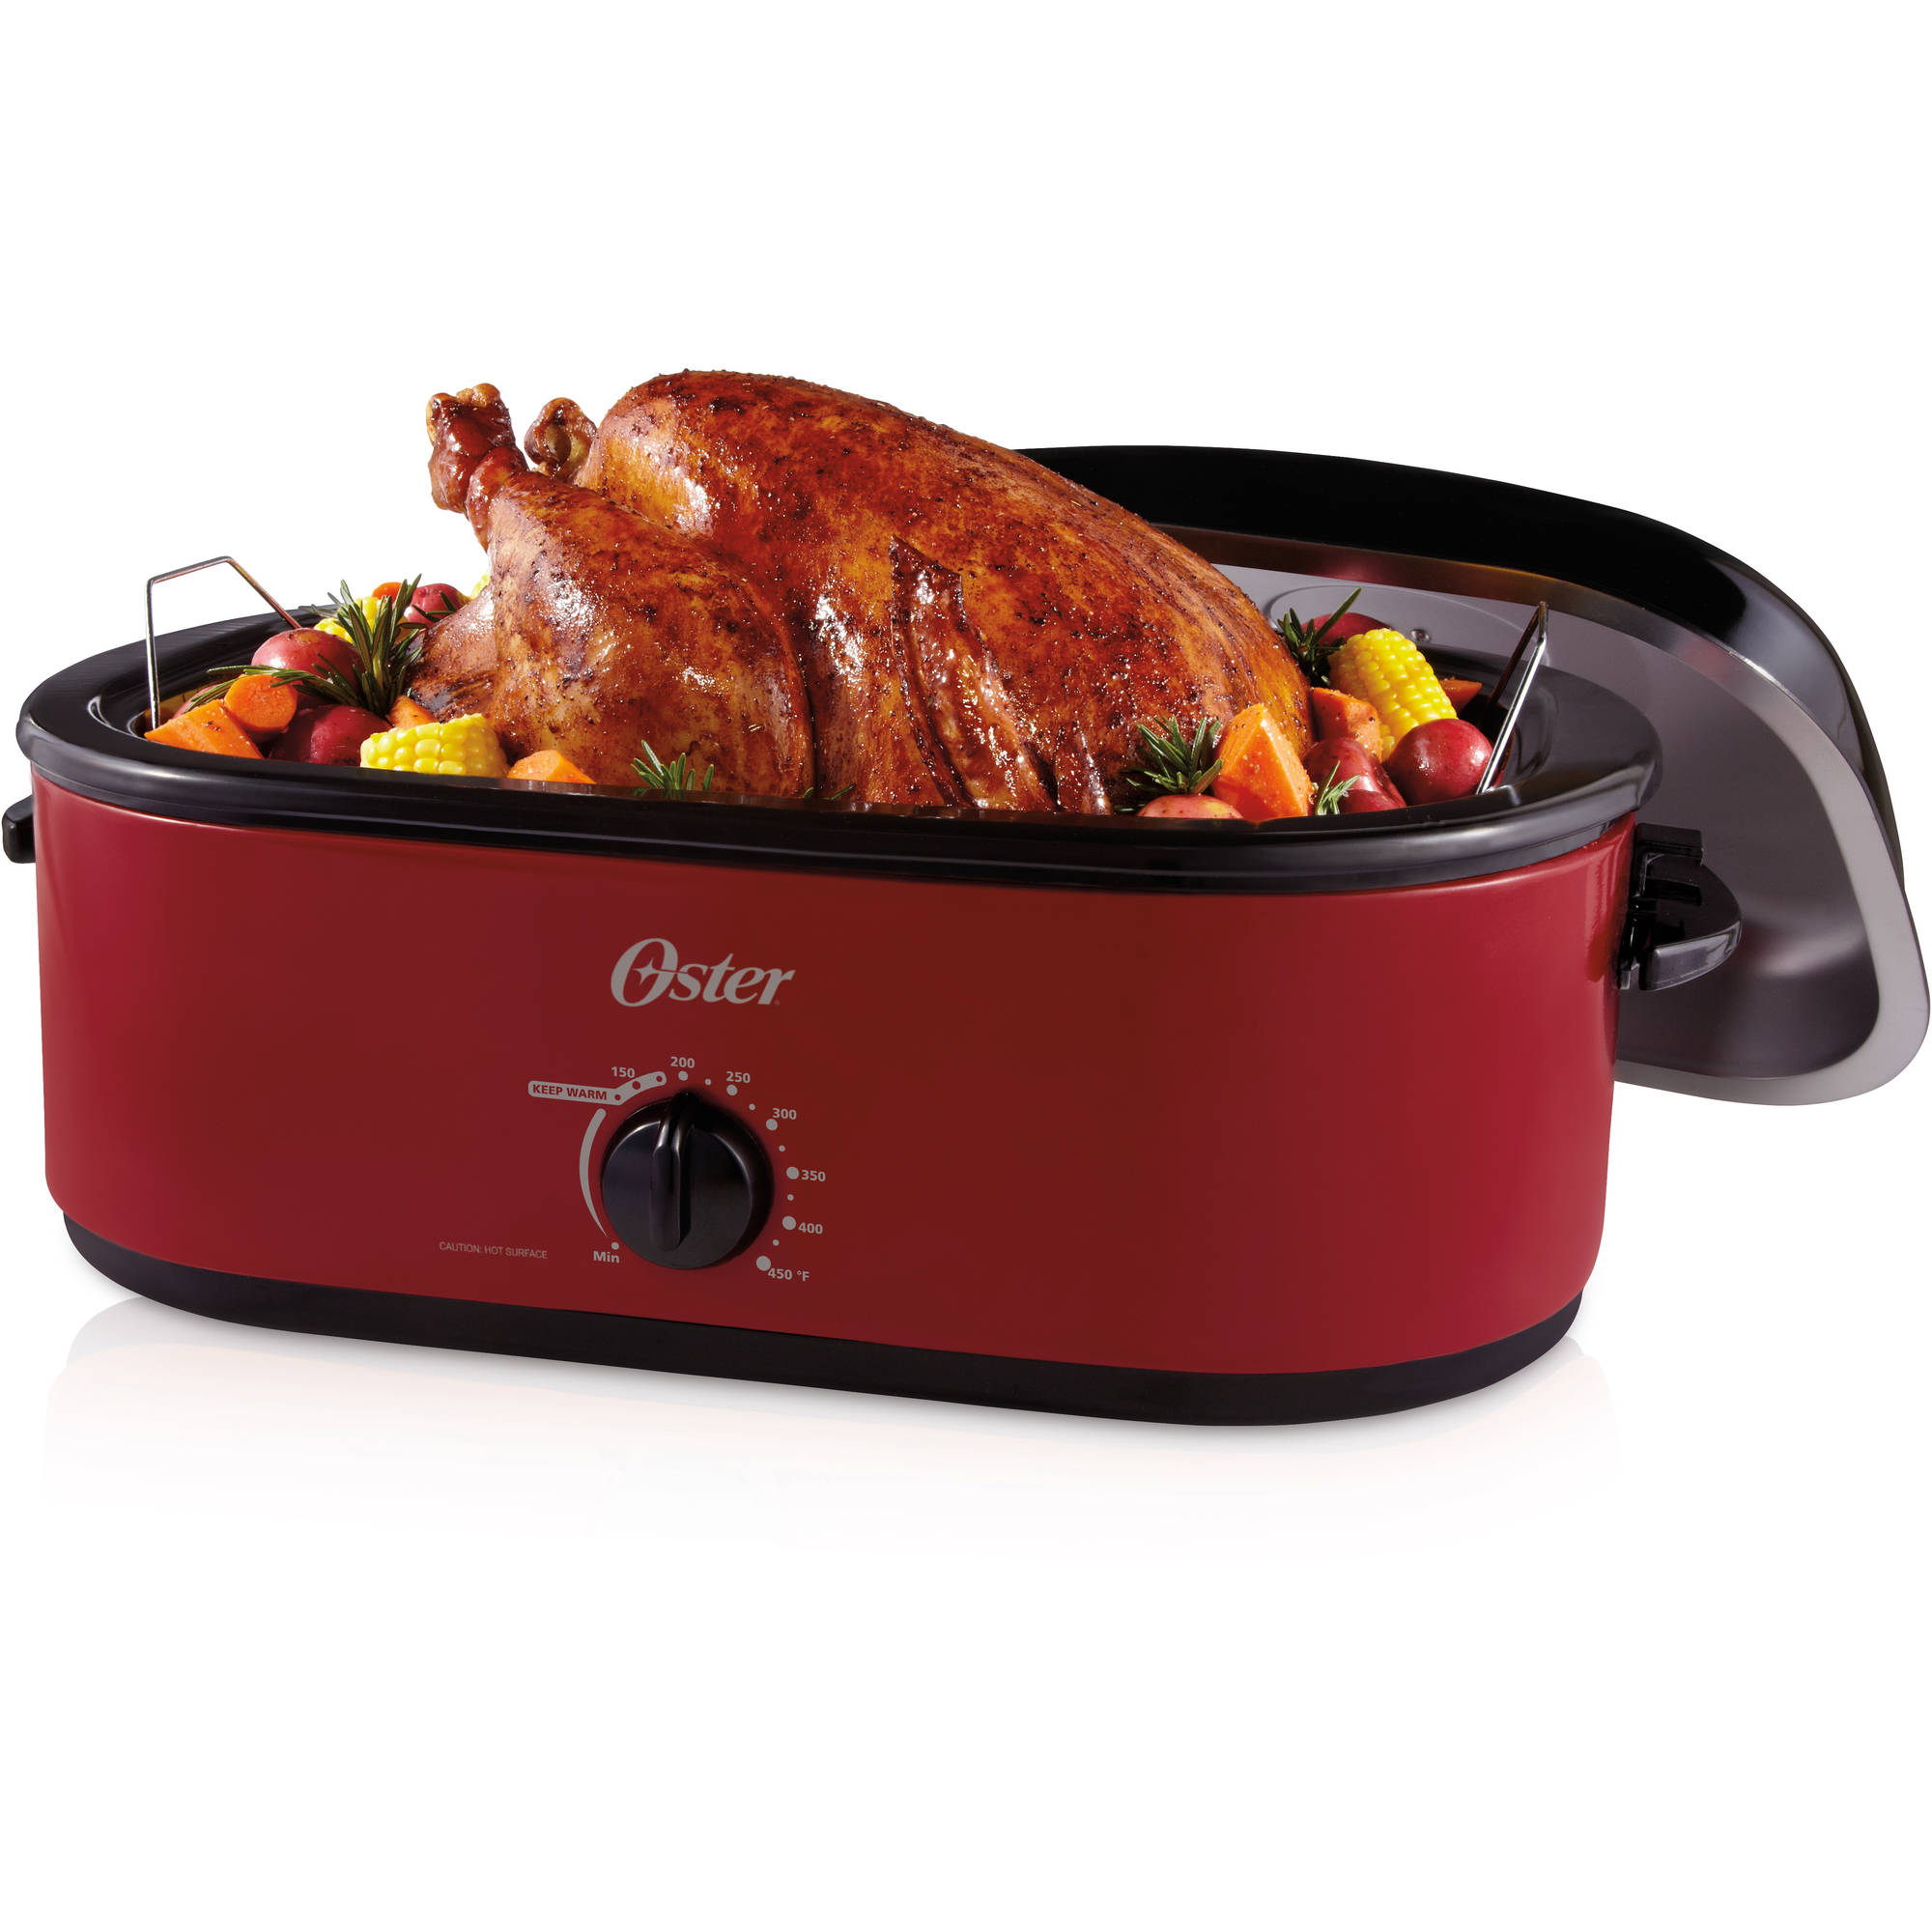 Oster 24-Pound Turkey Roaster Oven, 18-Quart